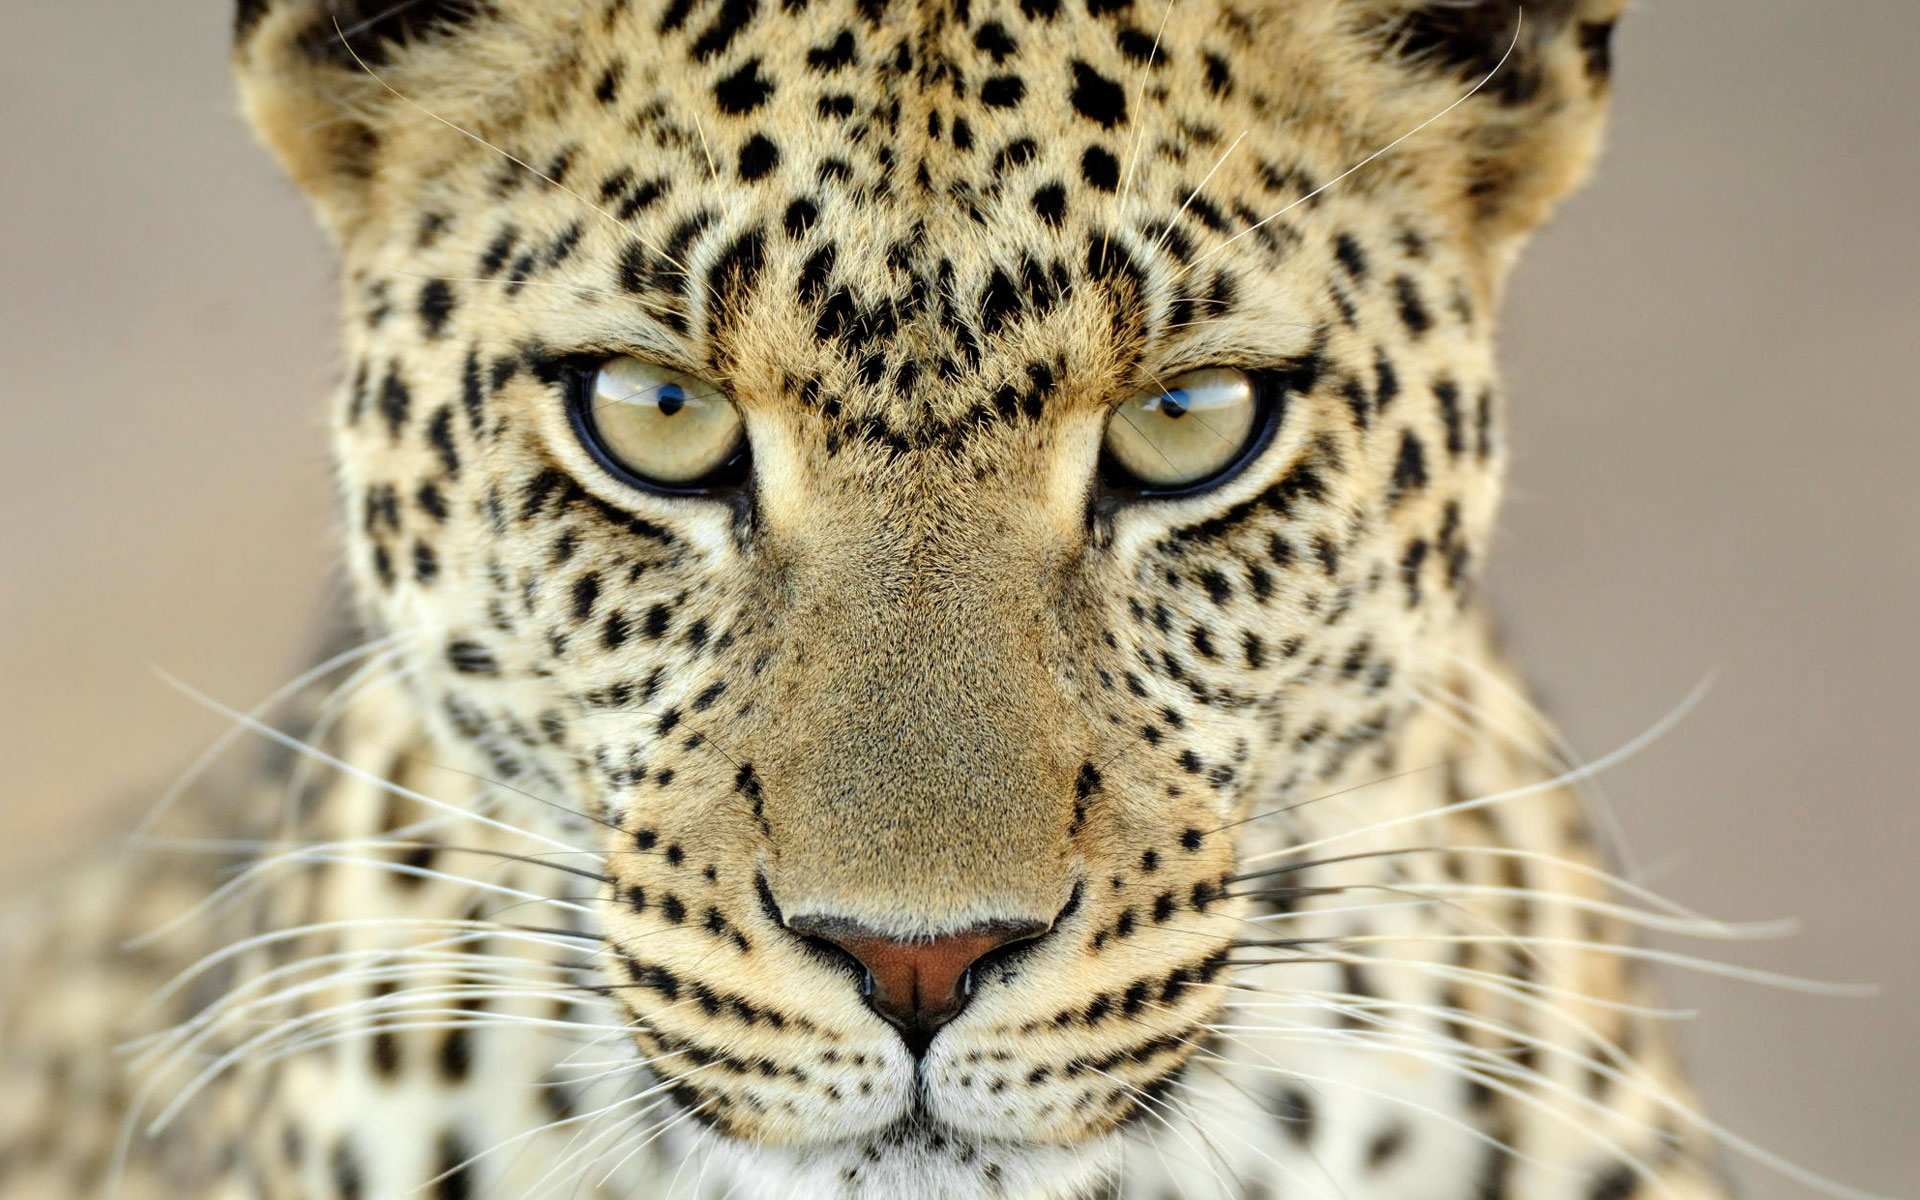 15923 download wallpaper Animals, Leopards screensavers and pictures for free